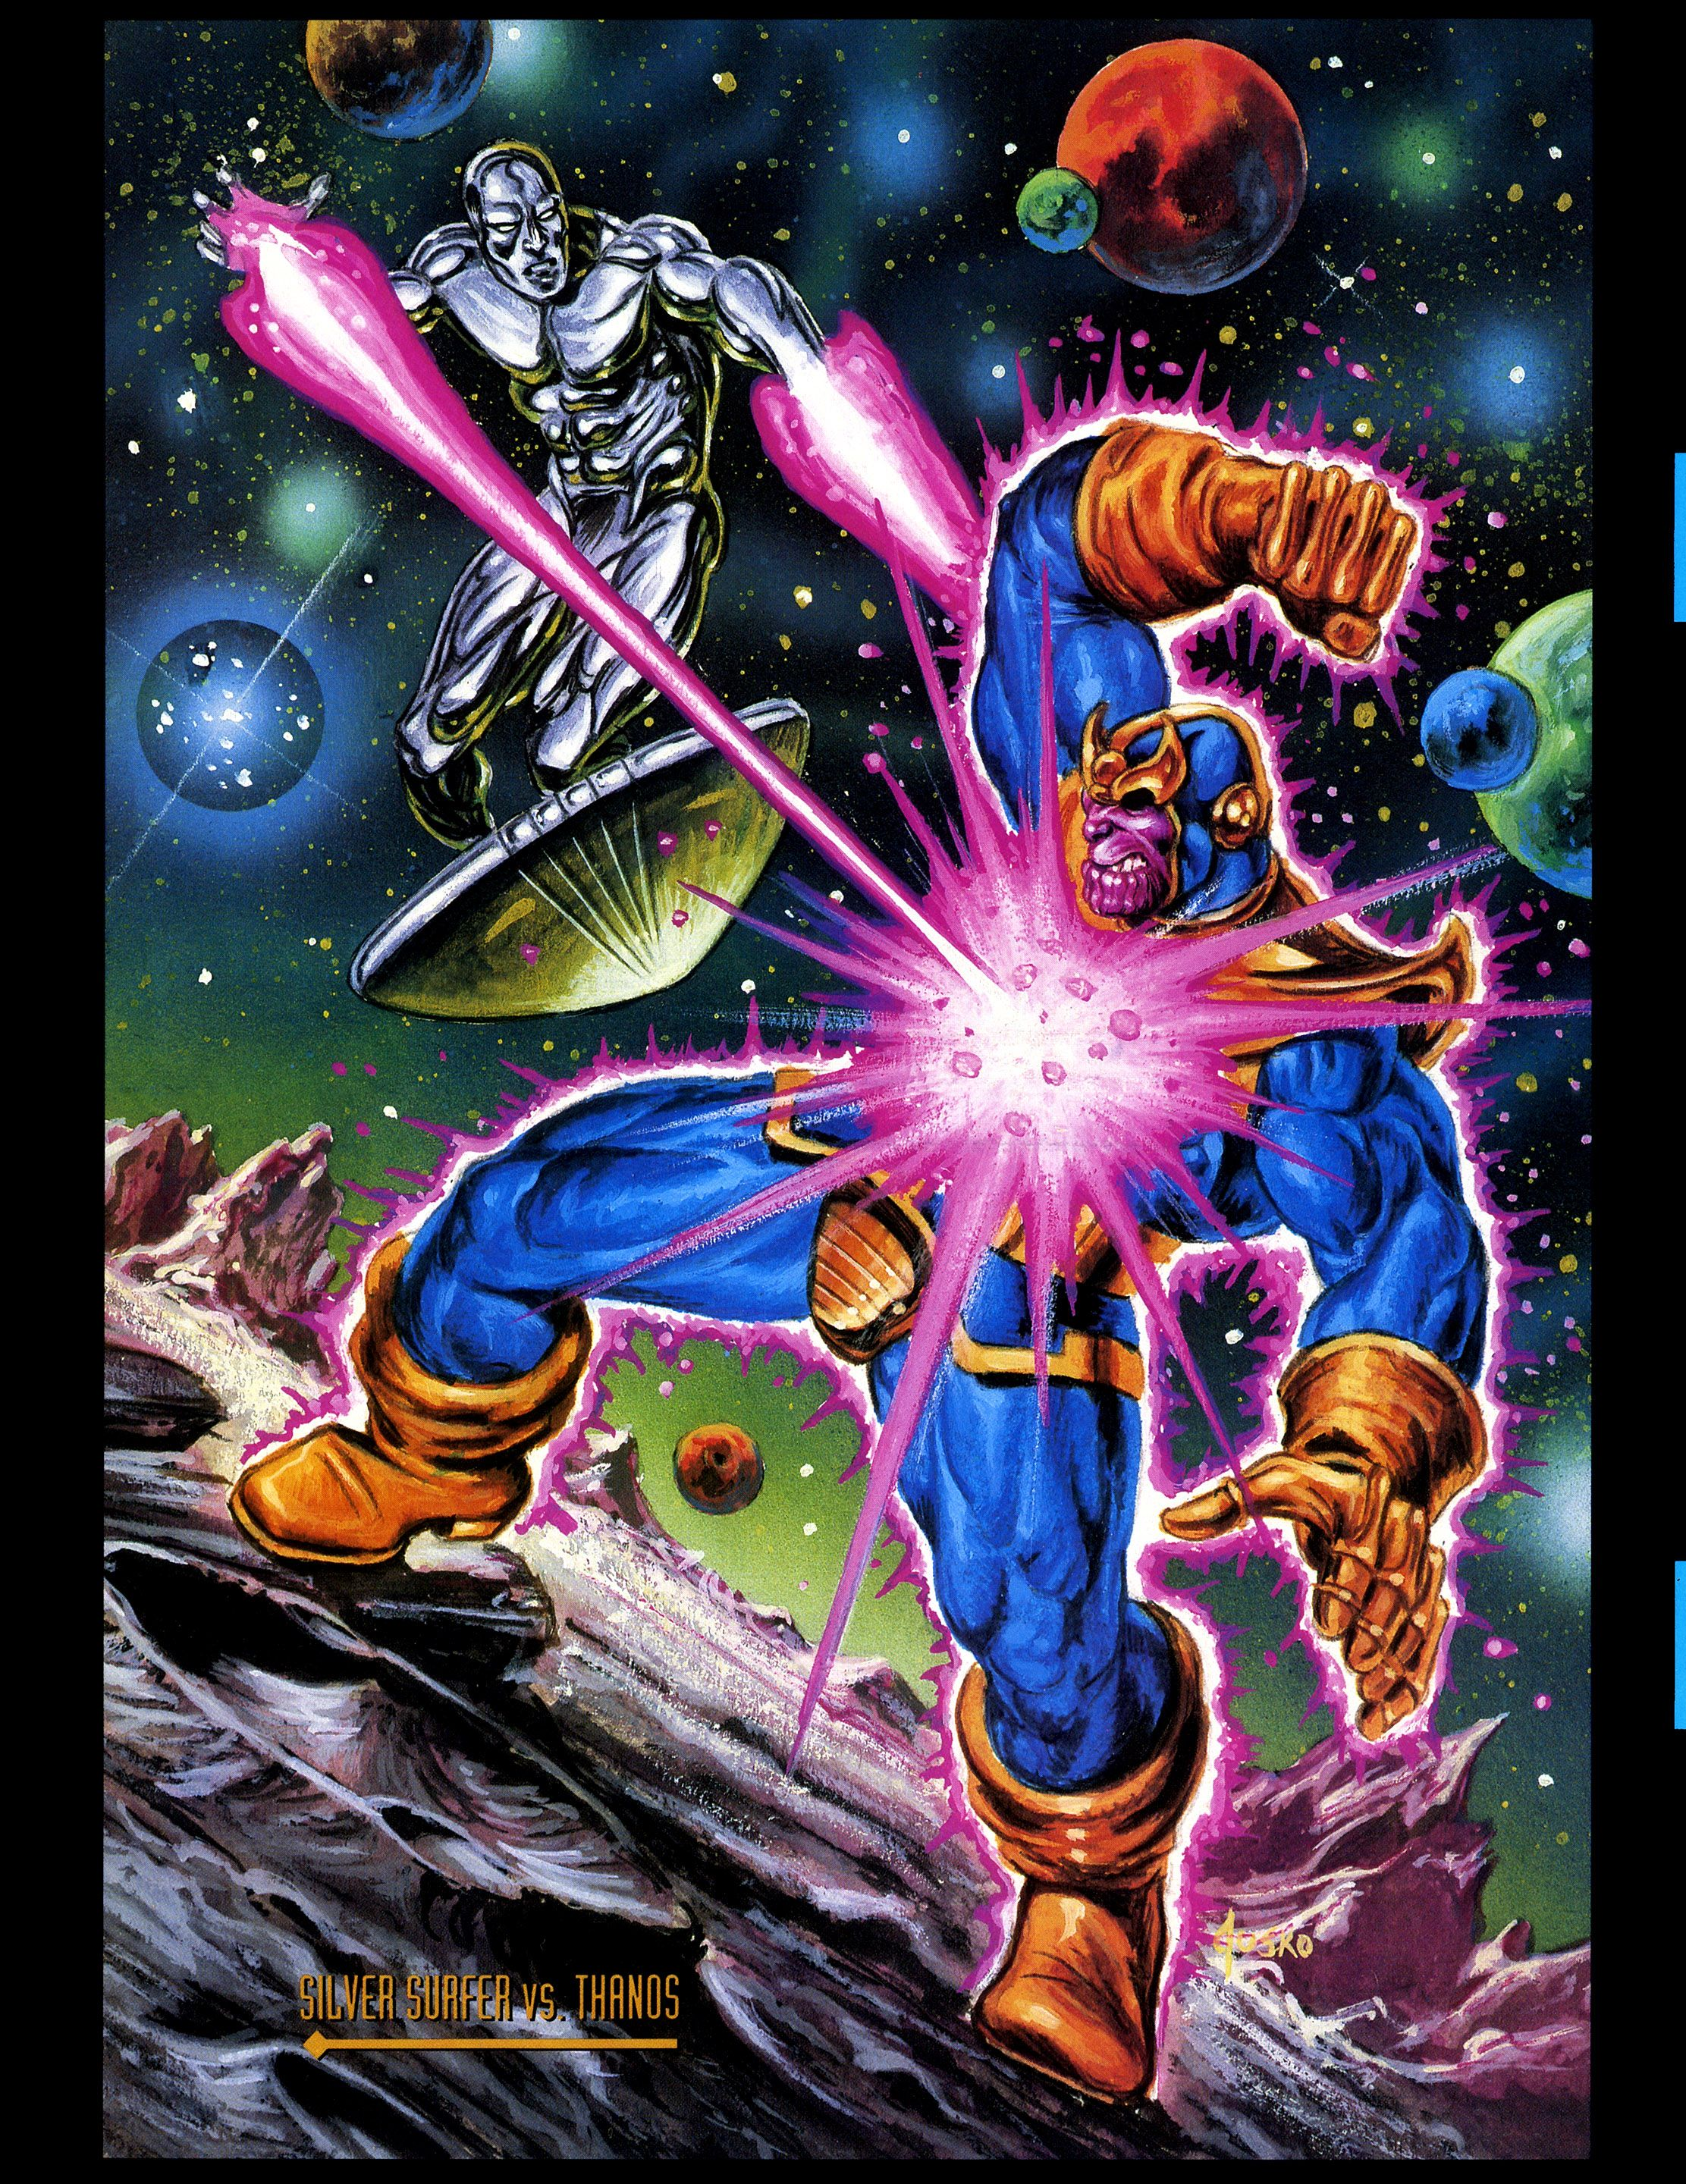 Ultron vs silver surfer